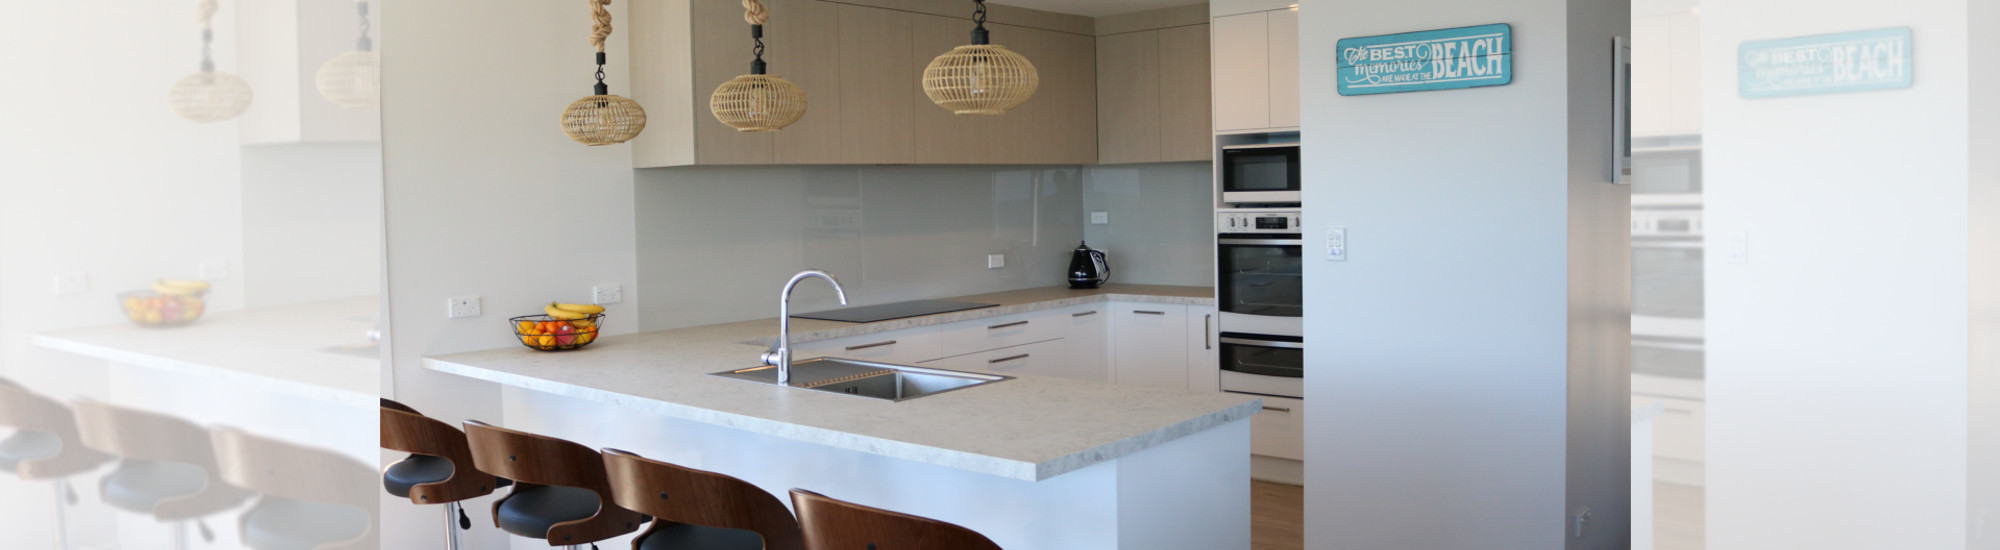 Marvelous Kitchen Benchtop Wellington Laminate Benches Upper Hutt Onthecornerstone Fun Painted Chair Ideas Images Onthecornerstoneorg